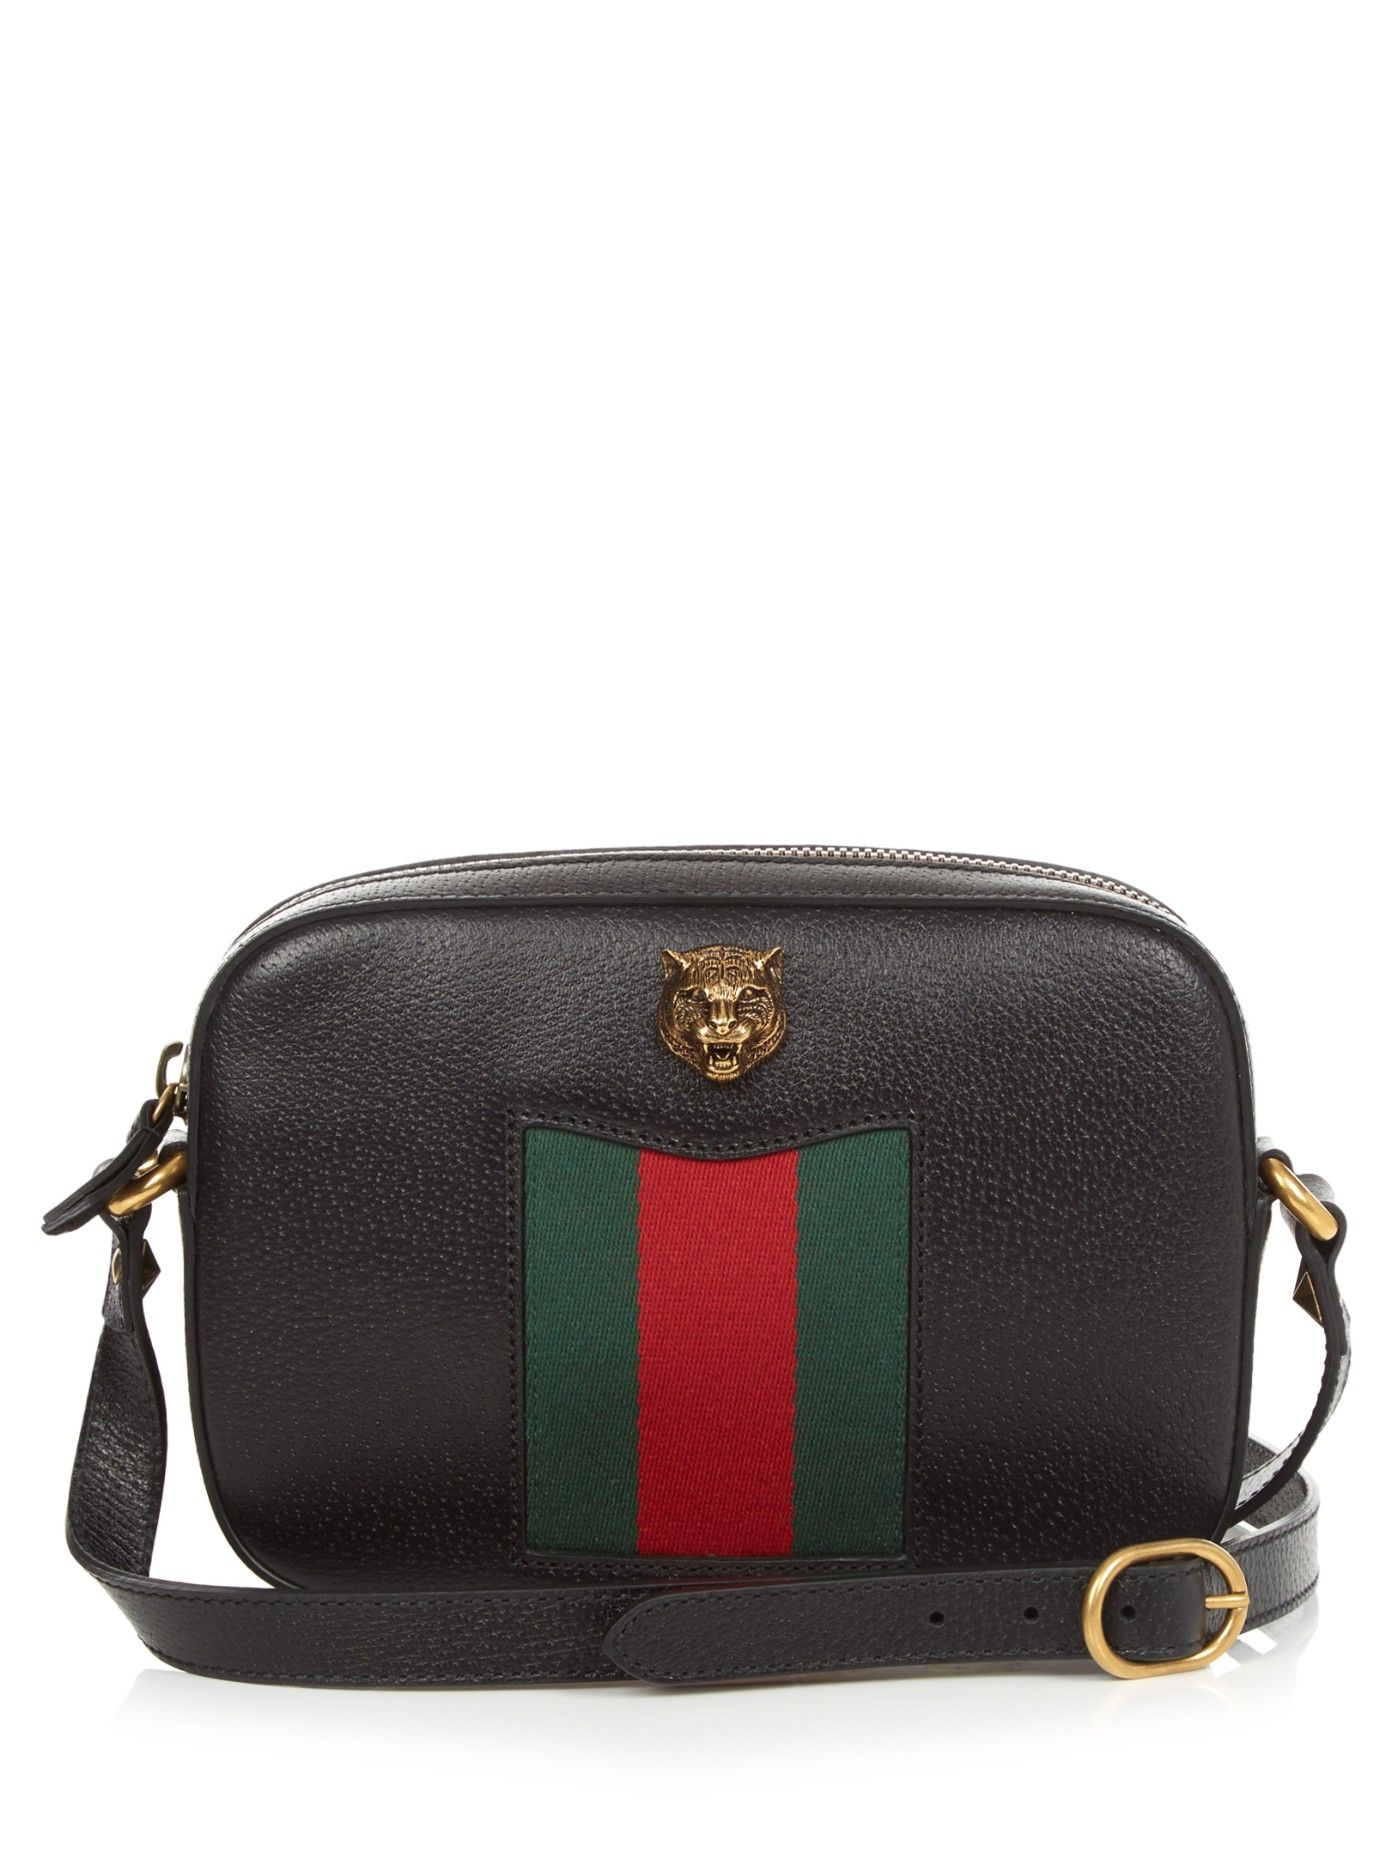 9ad42e11938d Gucci's black grained-leather Animalier bag blends classic house codes with  a new, whimsical charm.